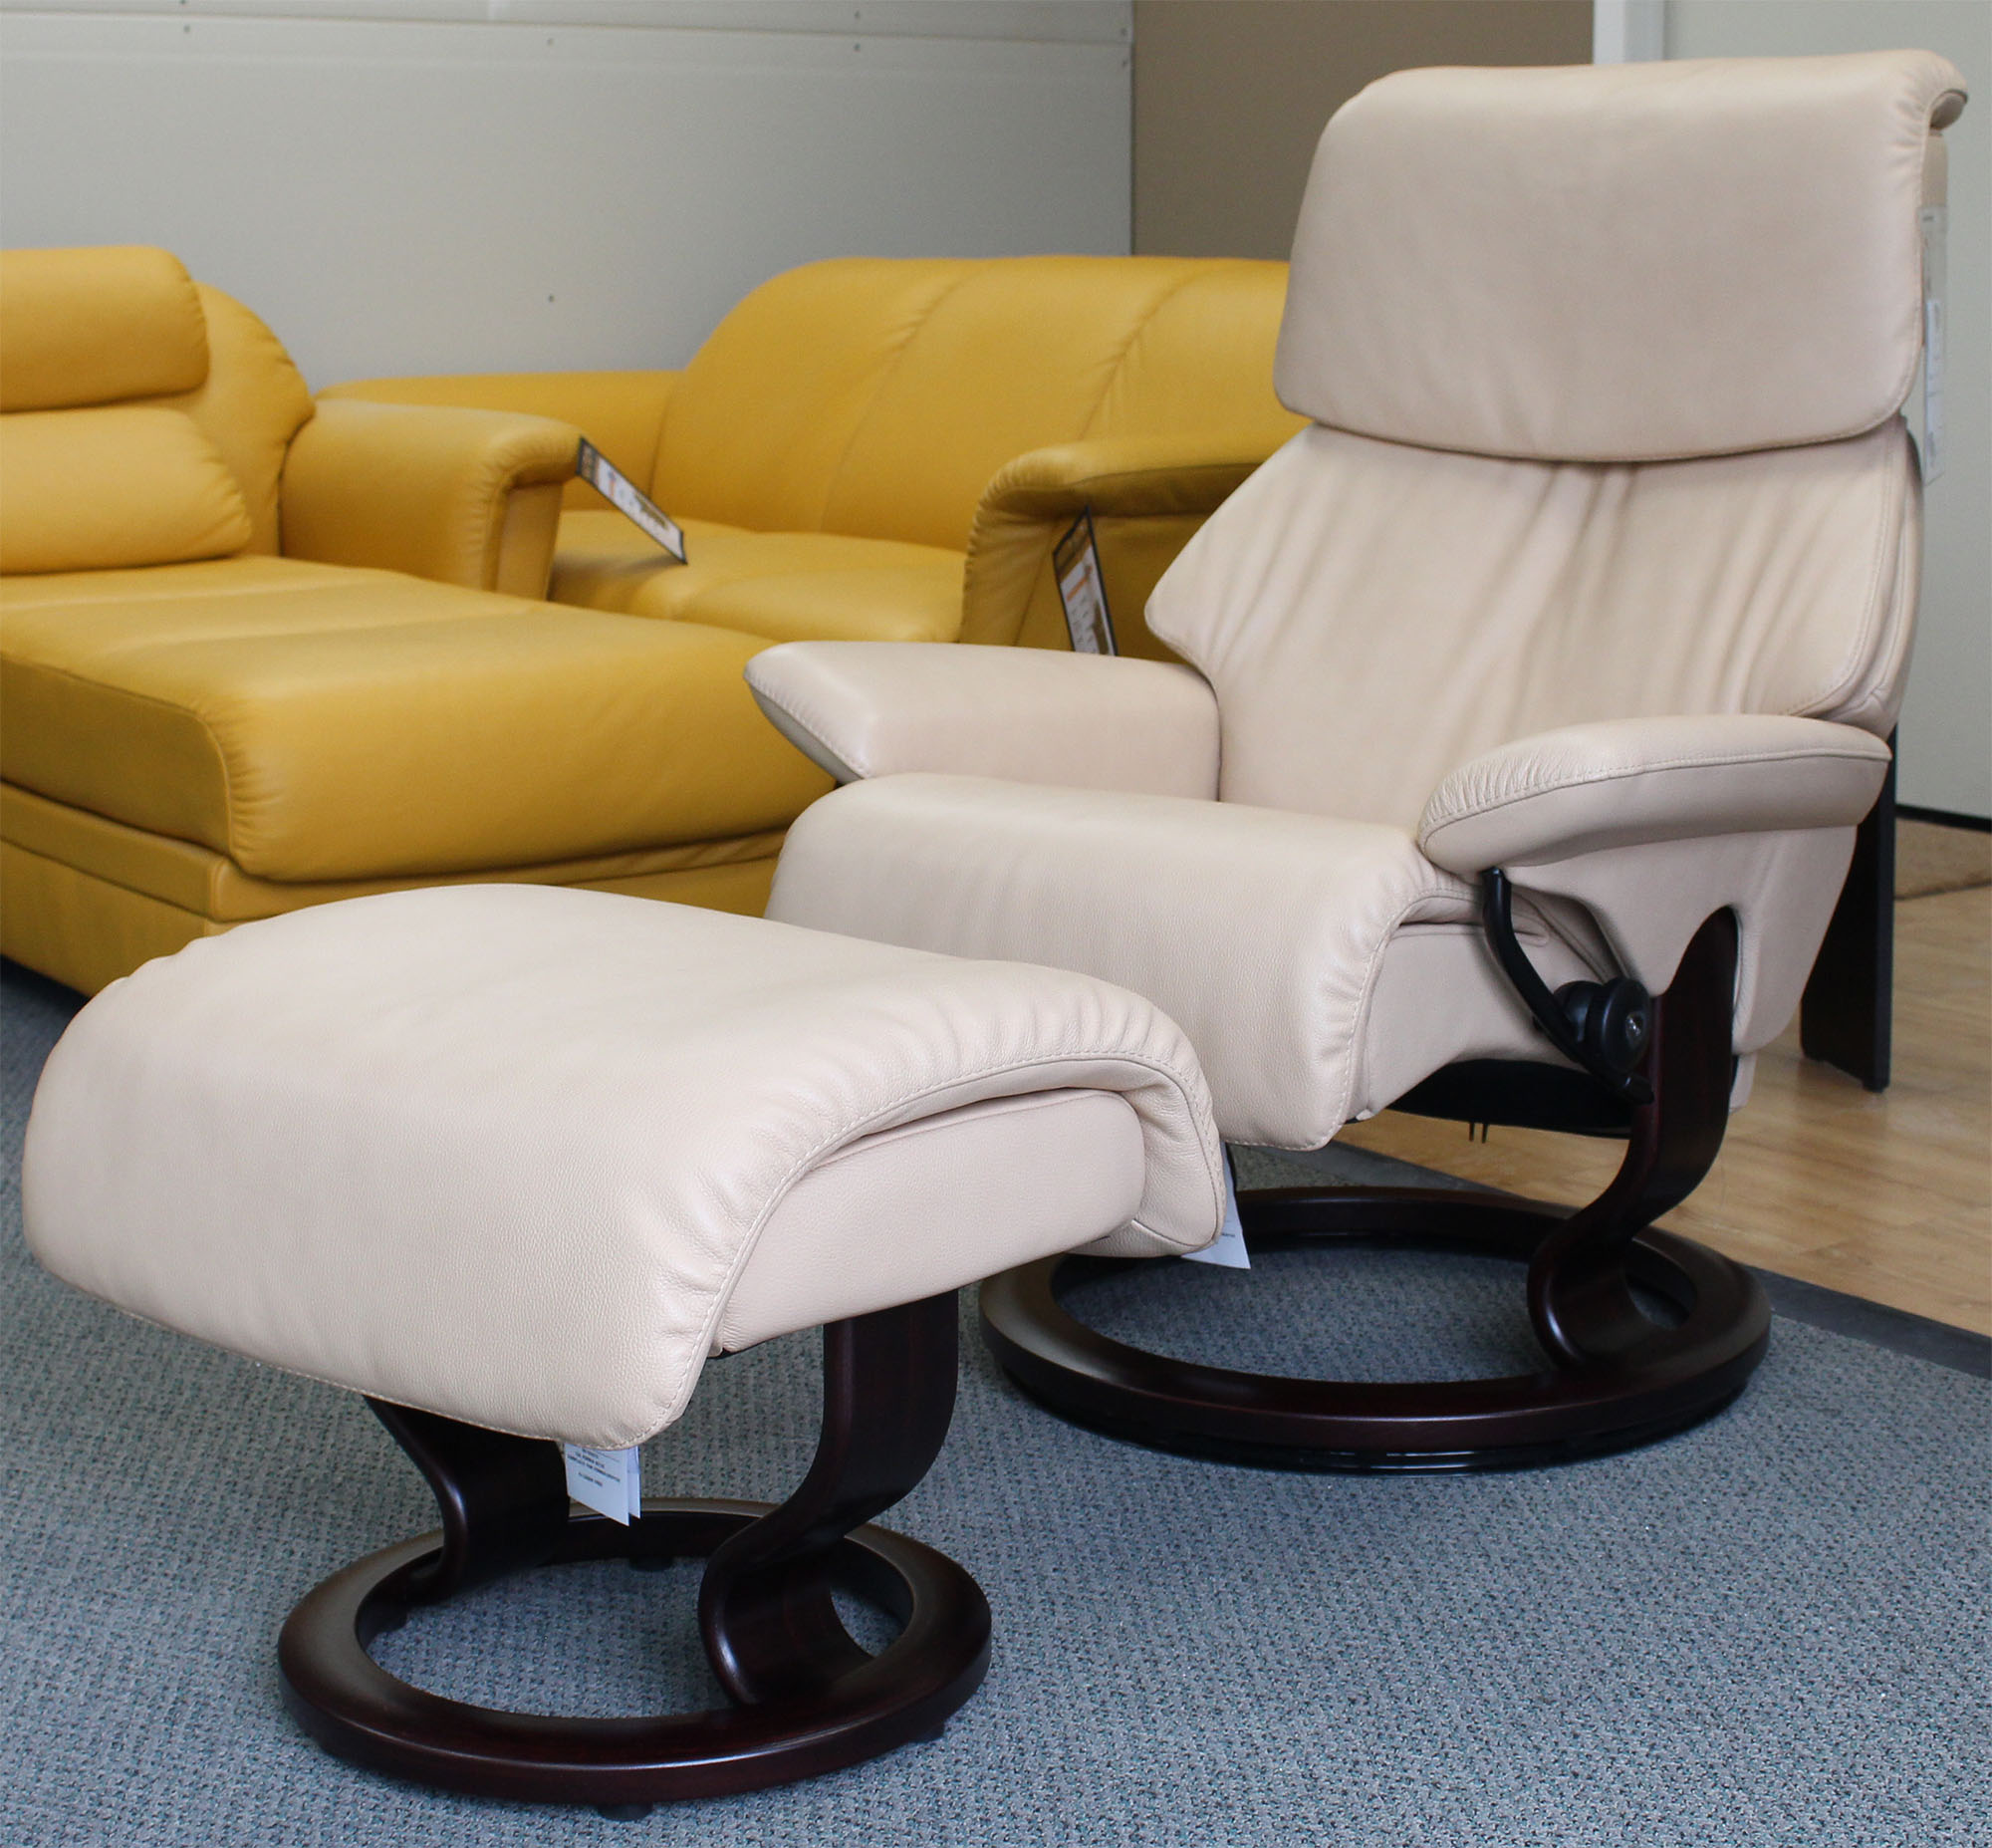 Astounding Stressless Dream Cori Passion Leather Recliner Chair And Ottoman By Ekornes Lamtechconsult Wood Chair Design Ideas Lamtechconsultcom